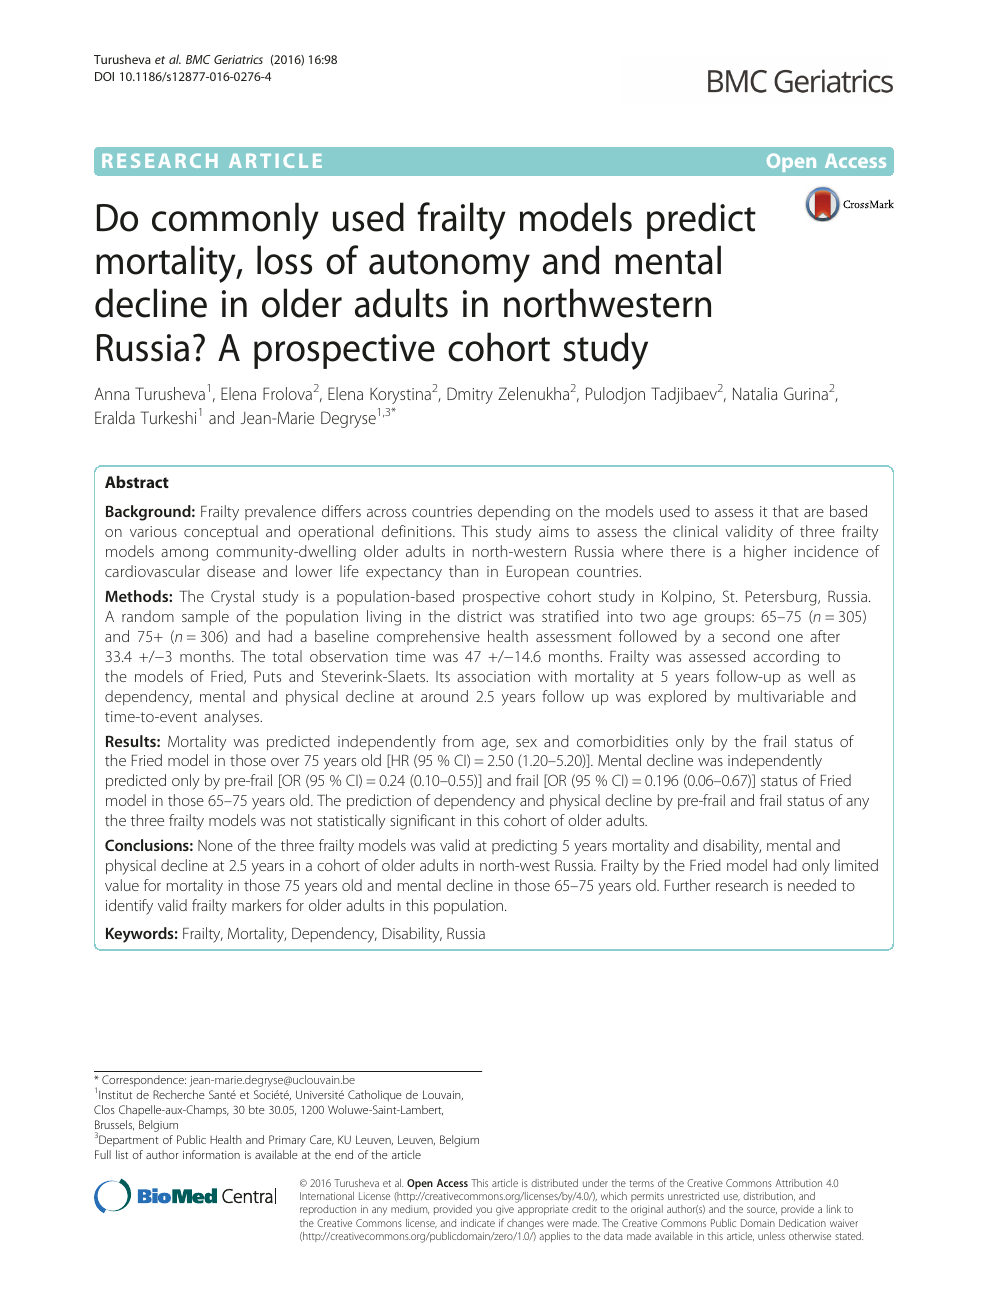 Do commonly used frailty models predict mortality, loss of